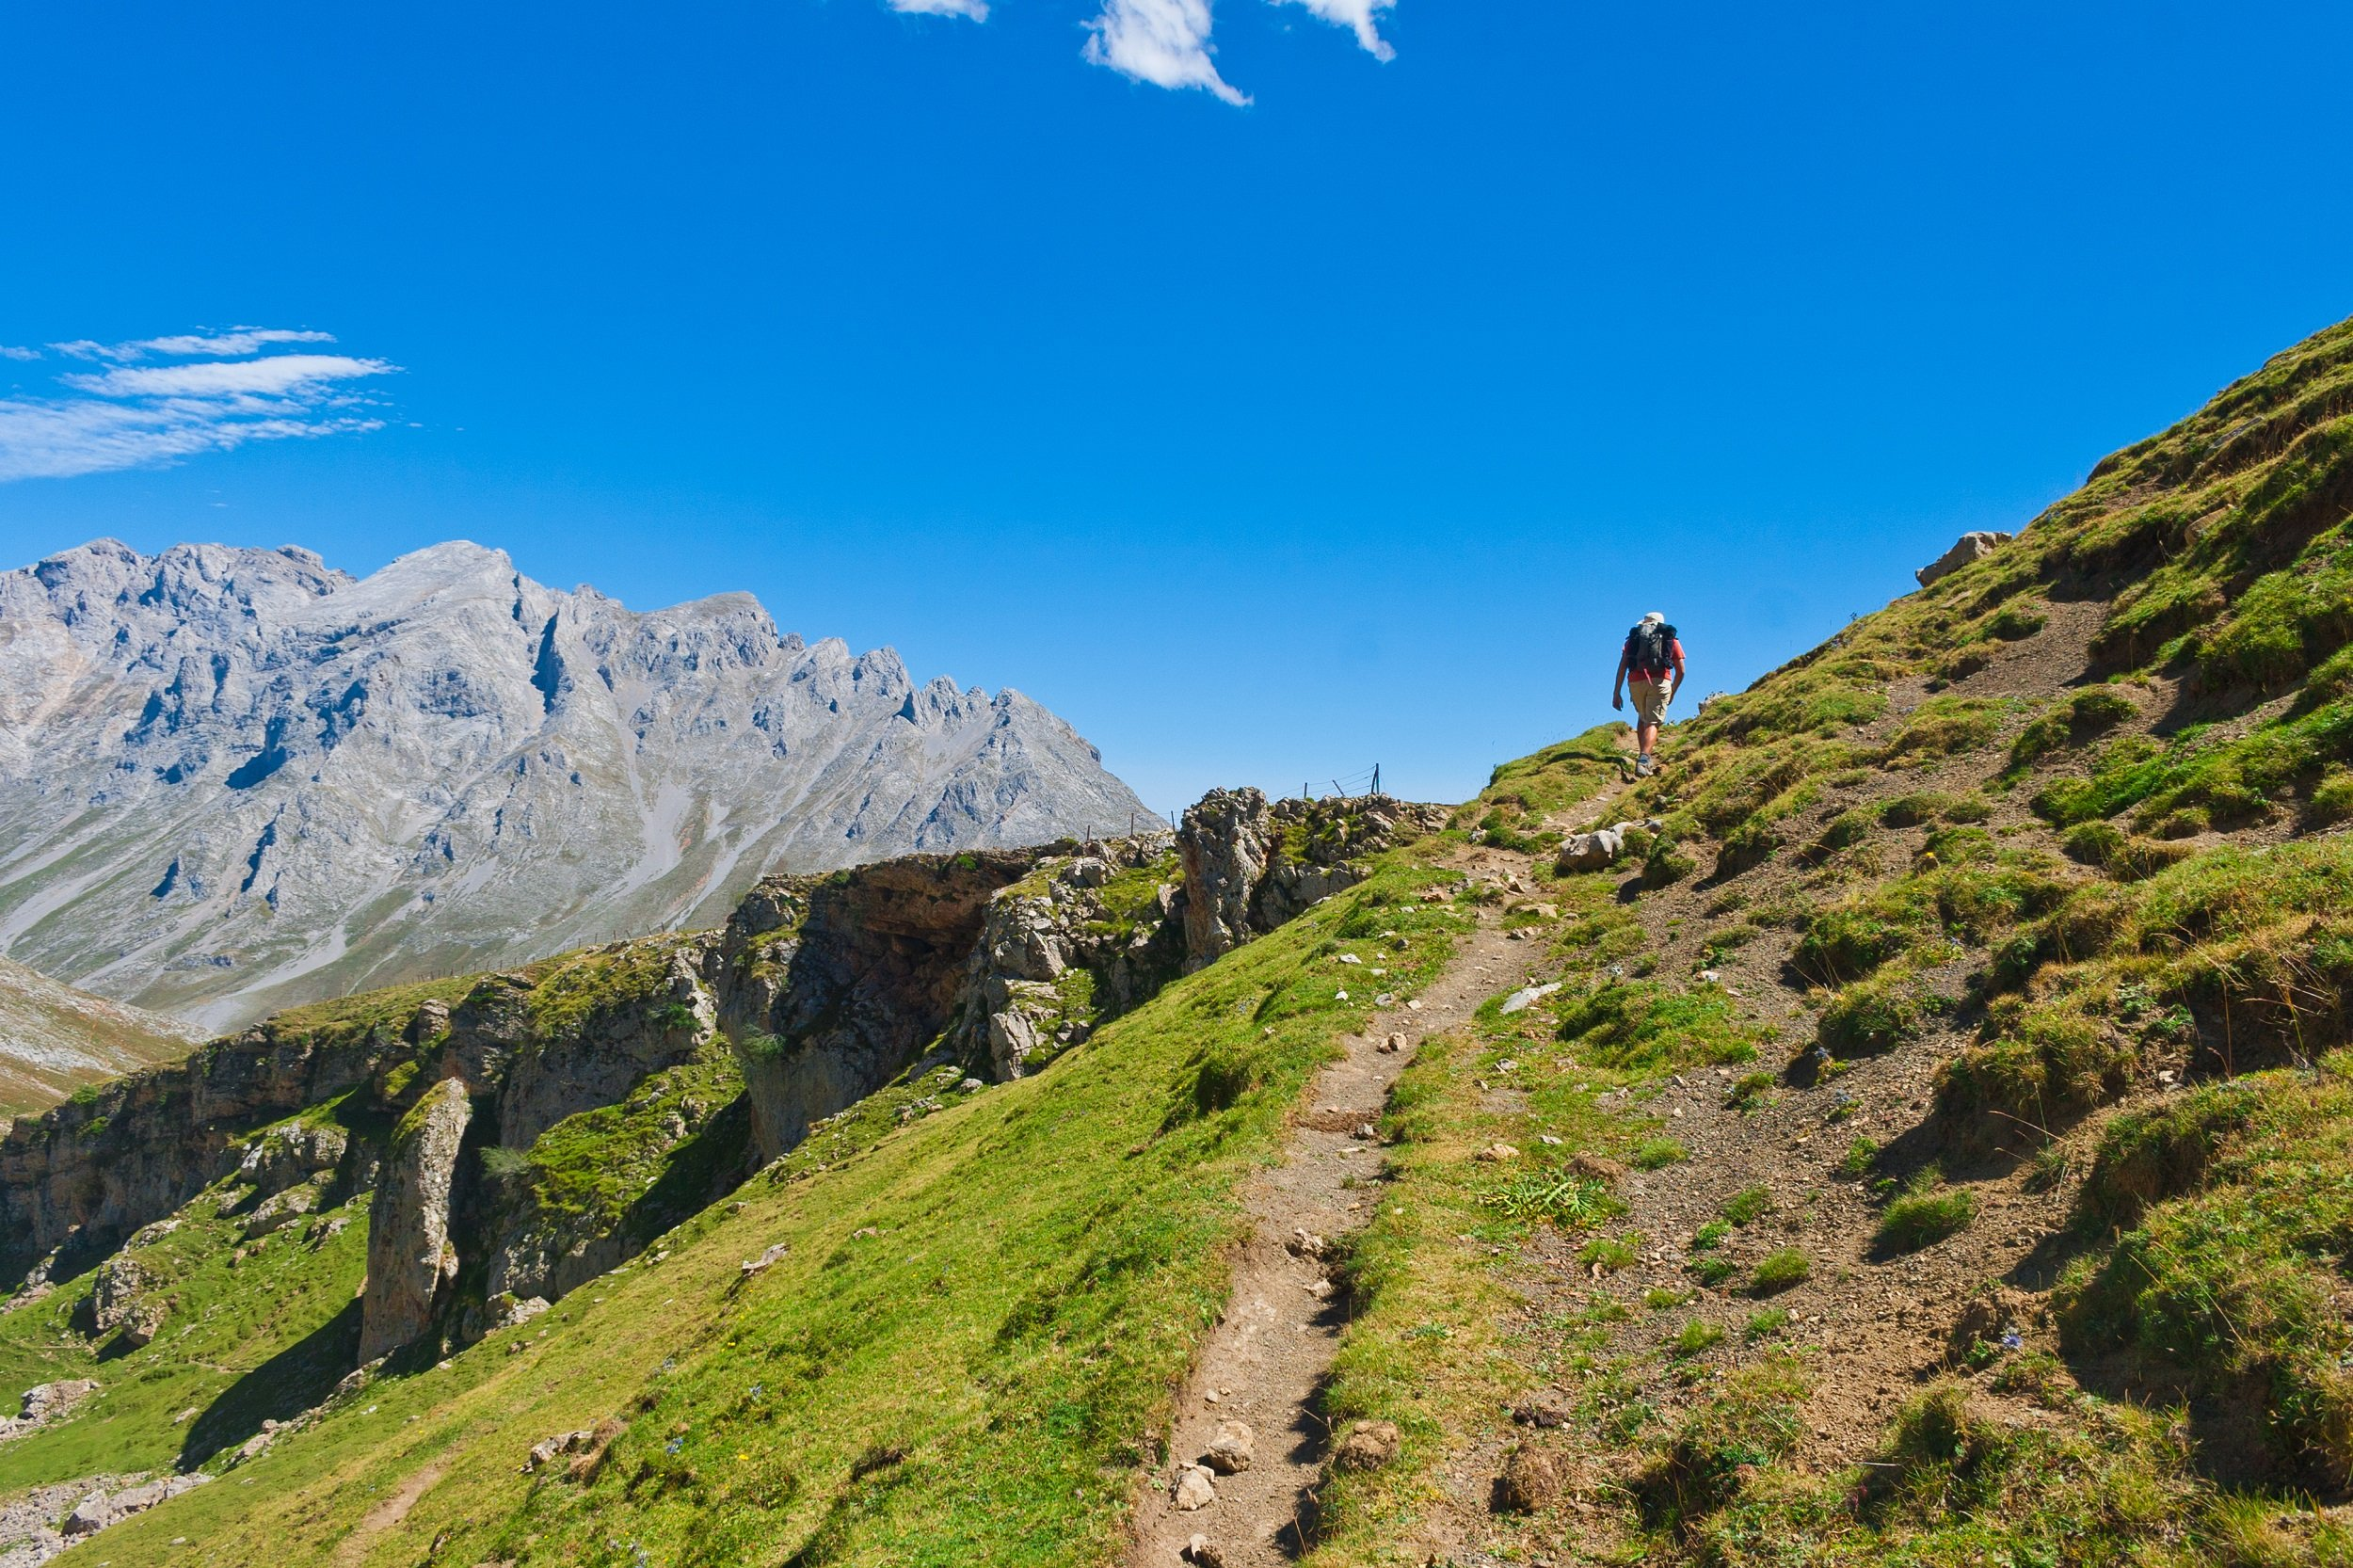 Picos De Europa Hiking And Spa Tour From Santander, Unquera, Panes And Torrelavega